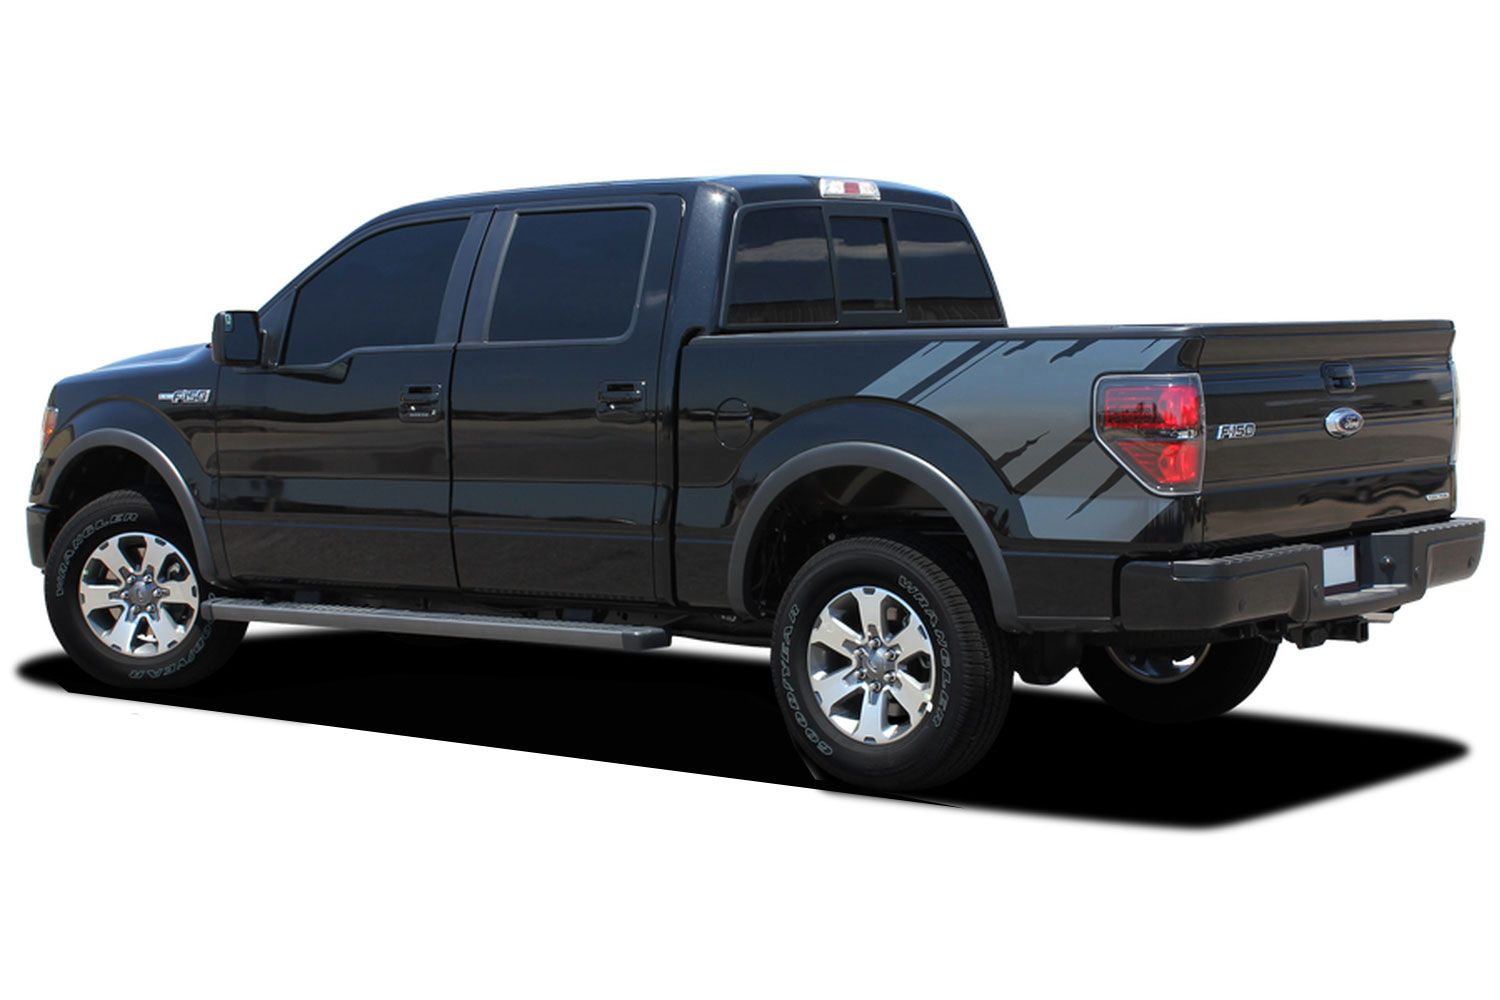 Predator 2 Raptor Style Side Bed Graphics Decals Stripes 2008-2014 Ford F-150